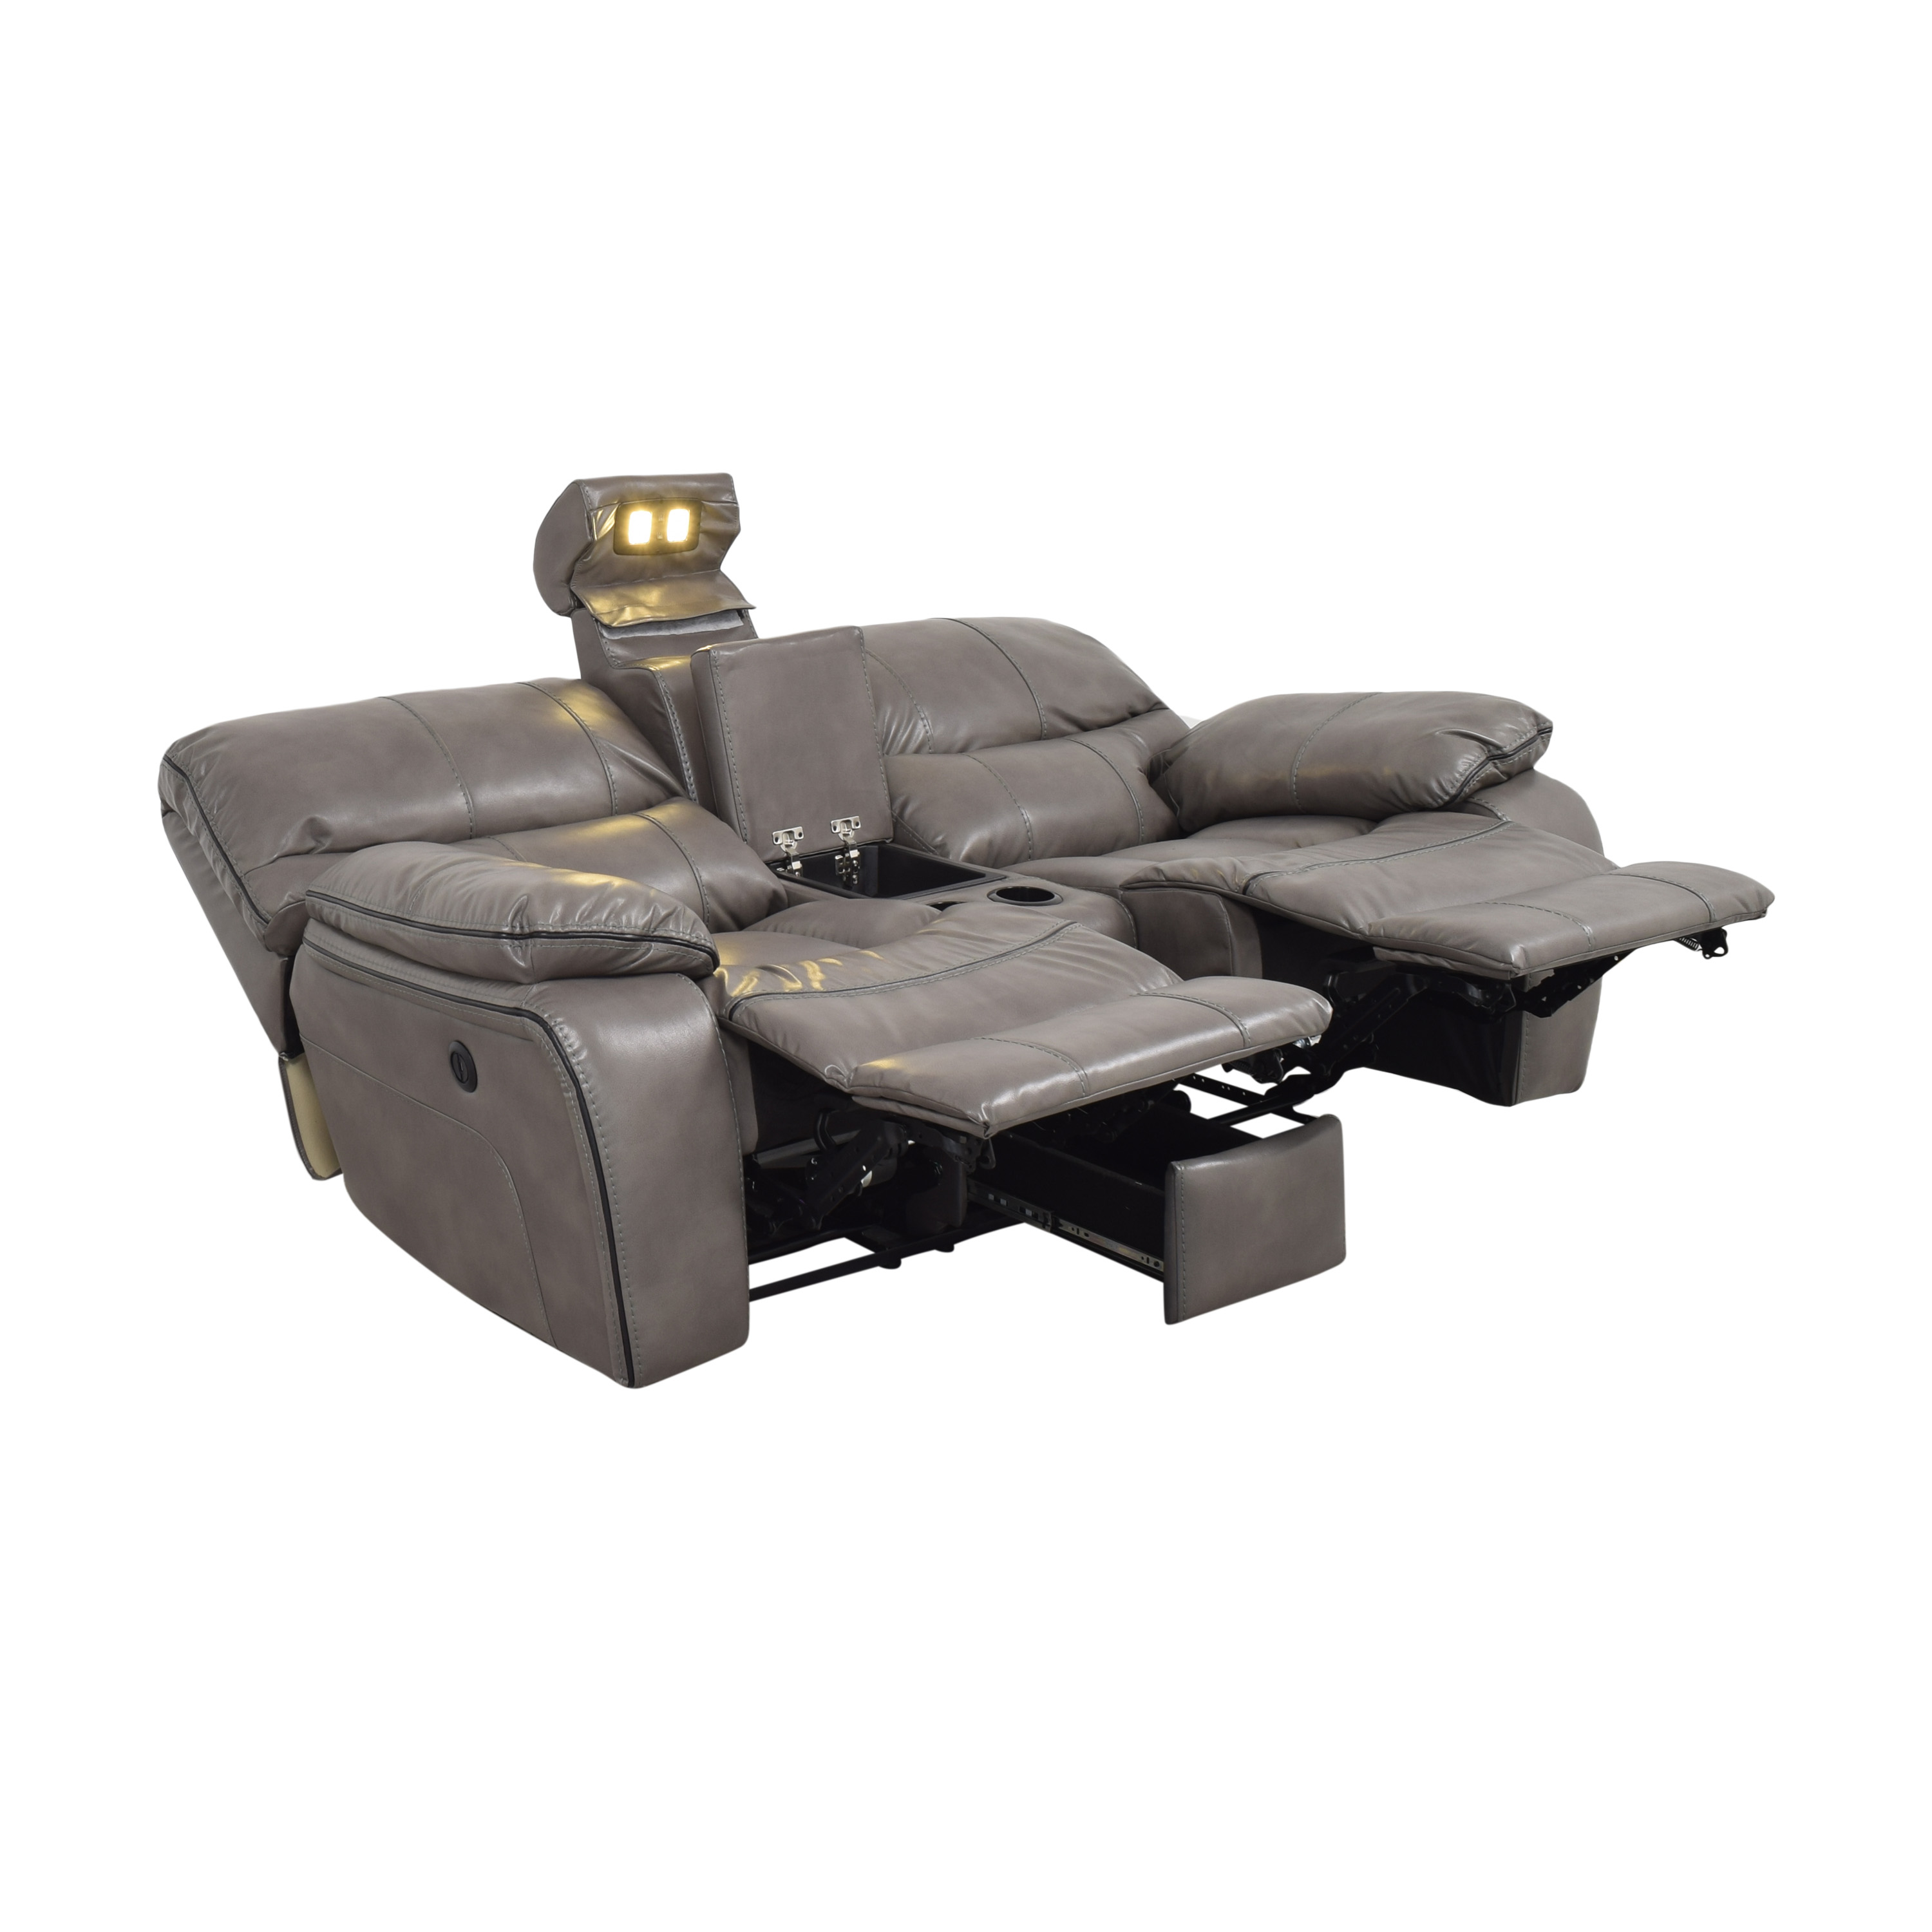 Bob's Avenger Power Reclining Console Loveseat Bob's Discount Furniture